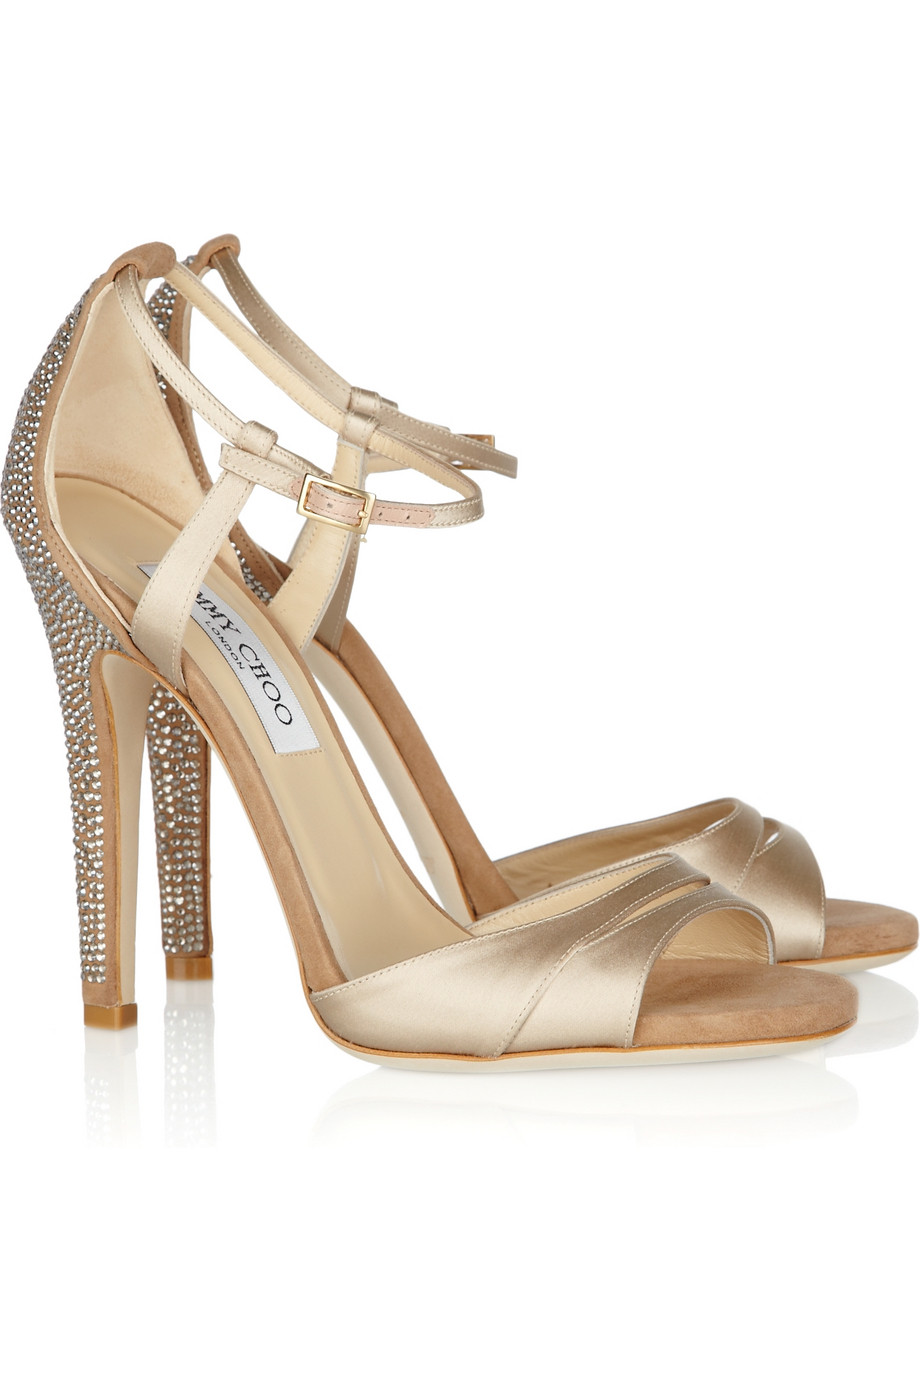 Lyst - Jimmy choo Tema Crystal-embellished Satin and Suede Sandals ...